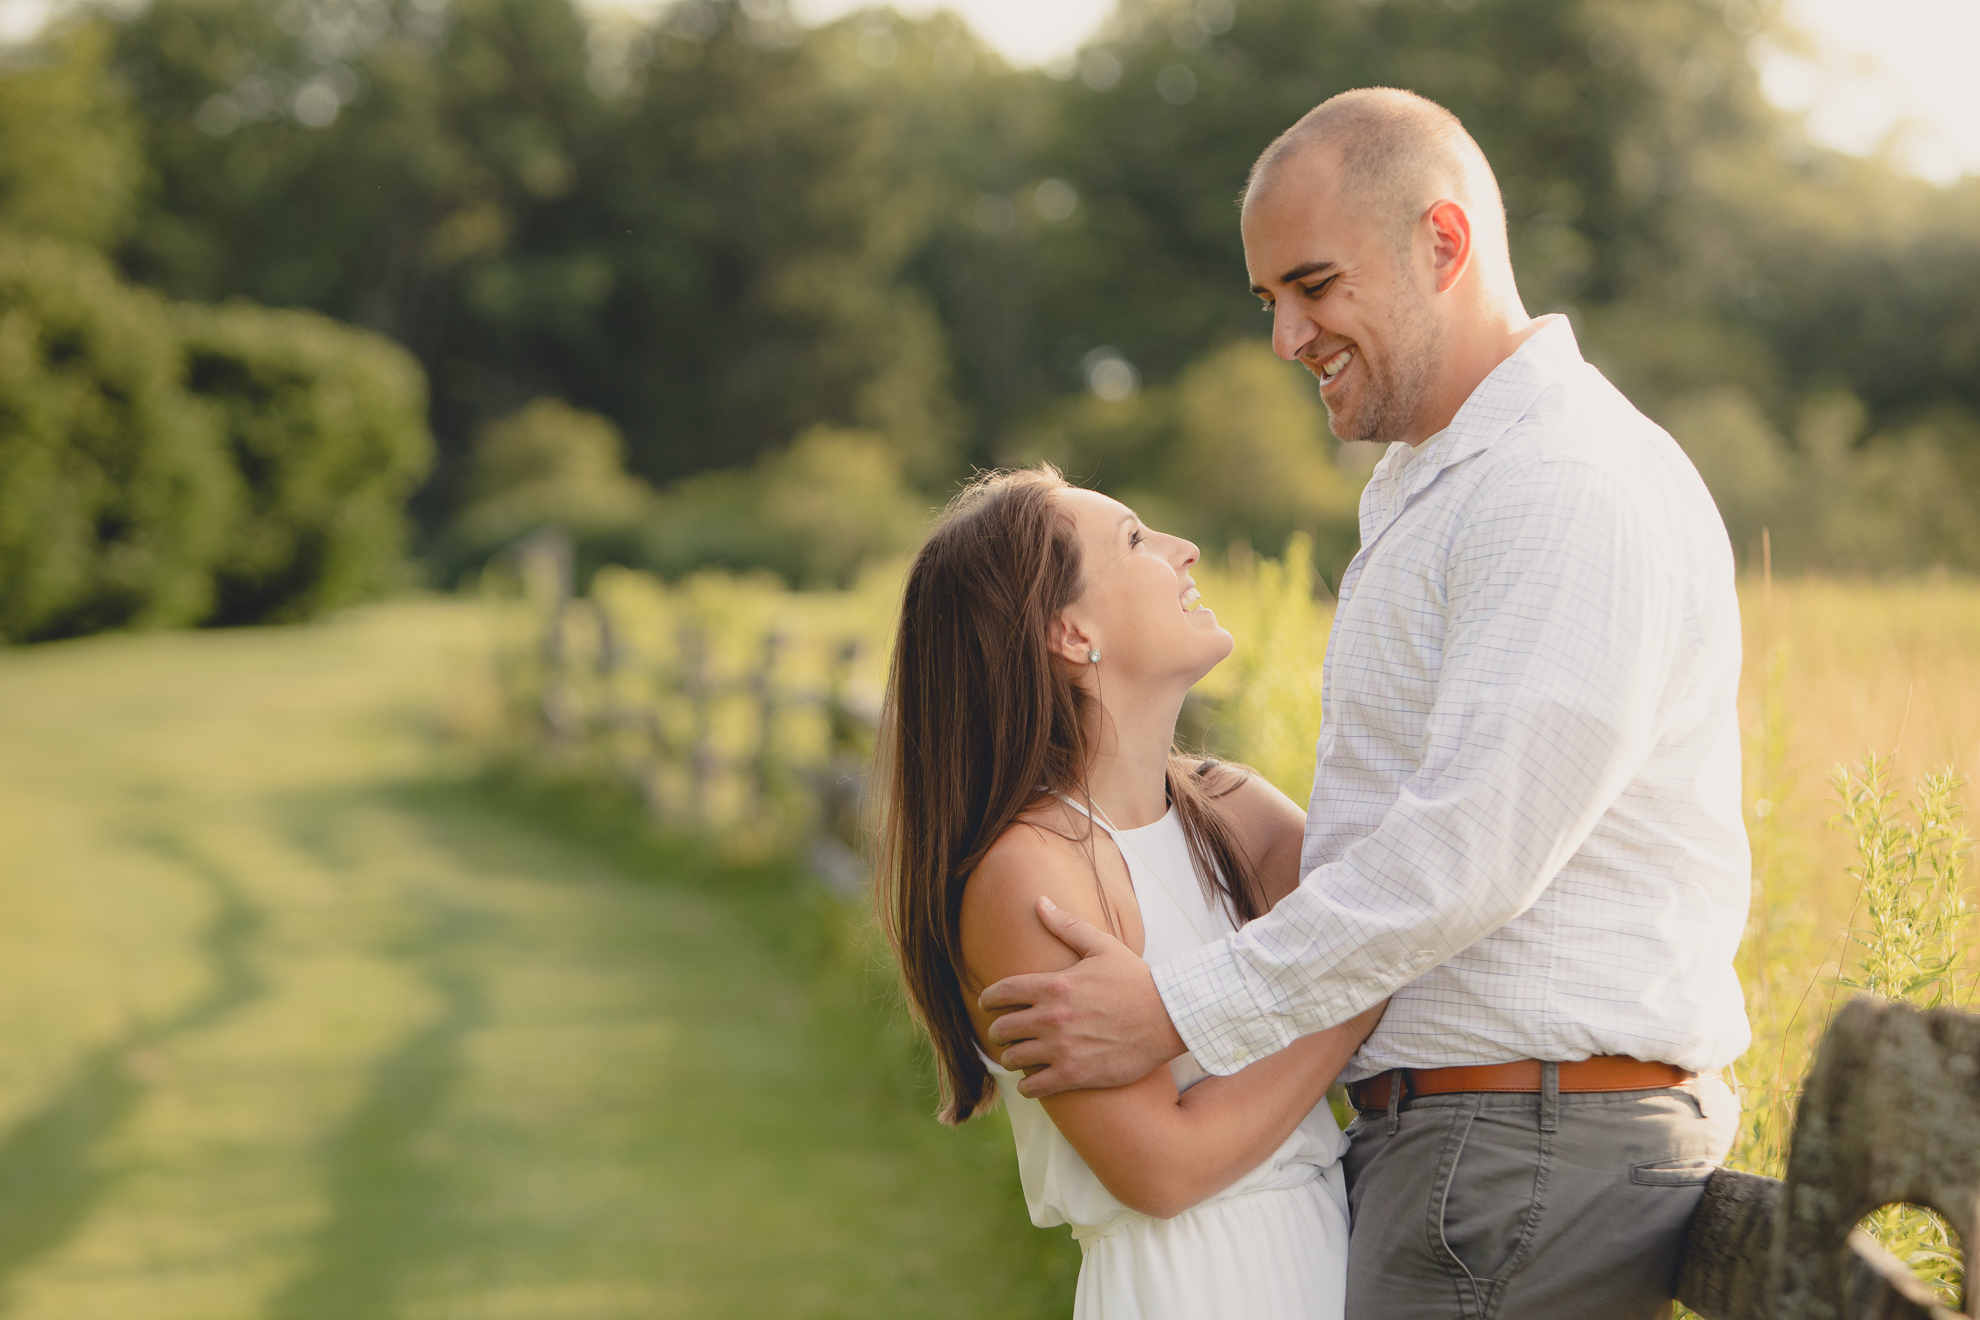 bride and groom laugh during wedding photography engagement portrait session in field at Knox Farm near Buffalo, NY